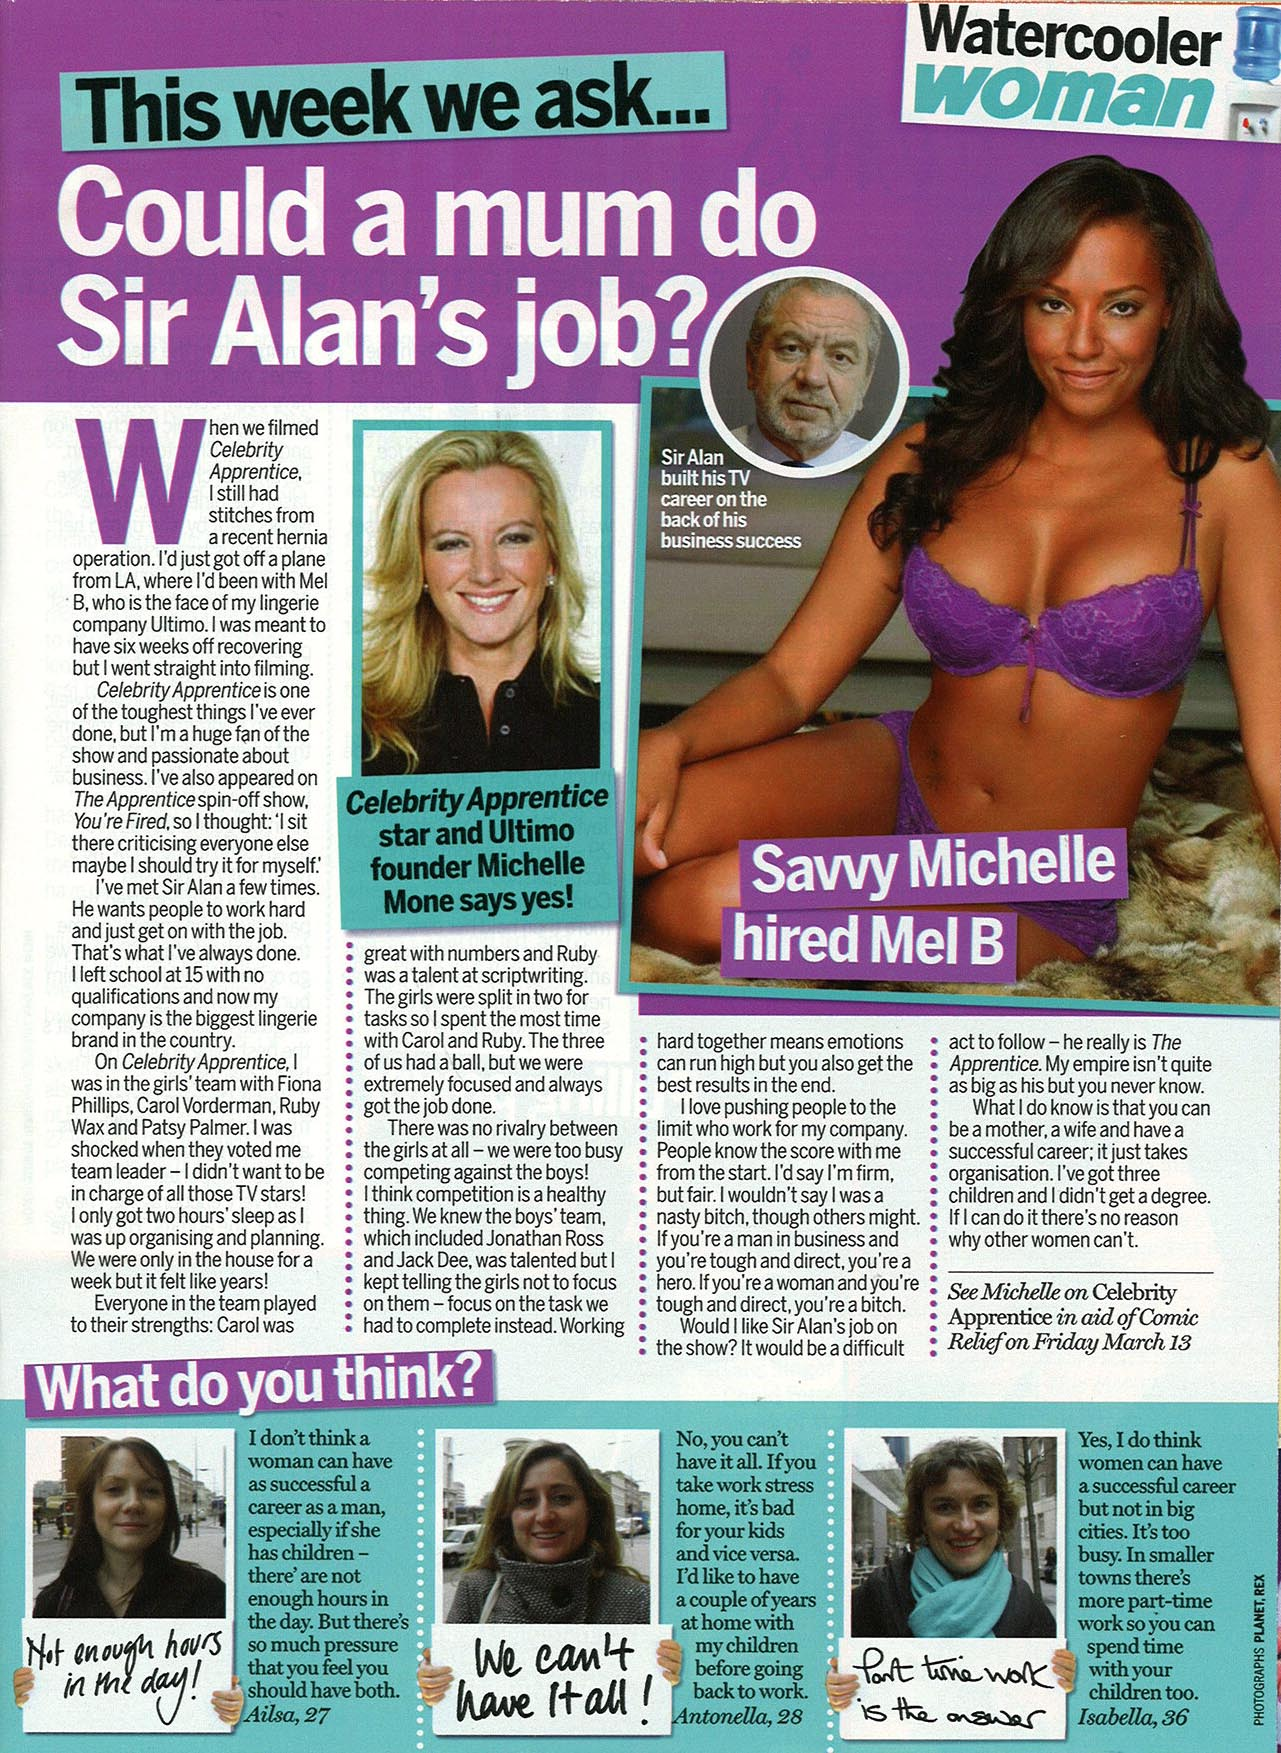 WomanMagazine_MelB_Interview_11thMarch